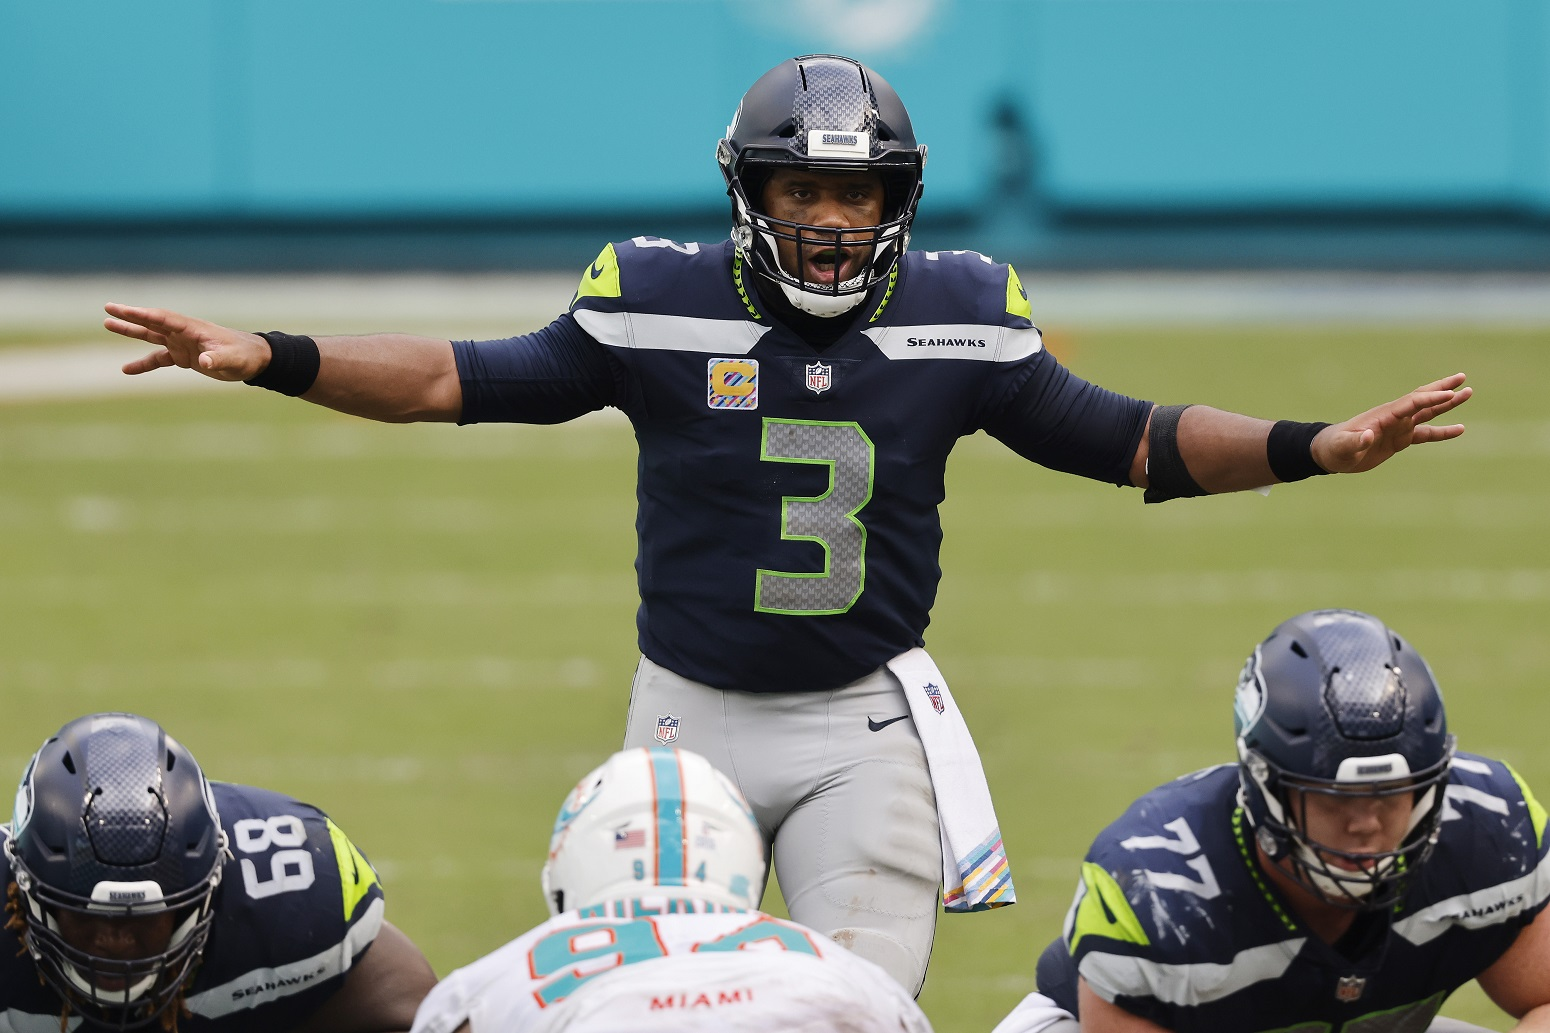 why Russell Wilson wears number 3